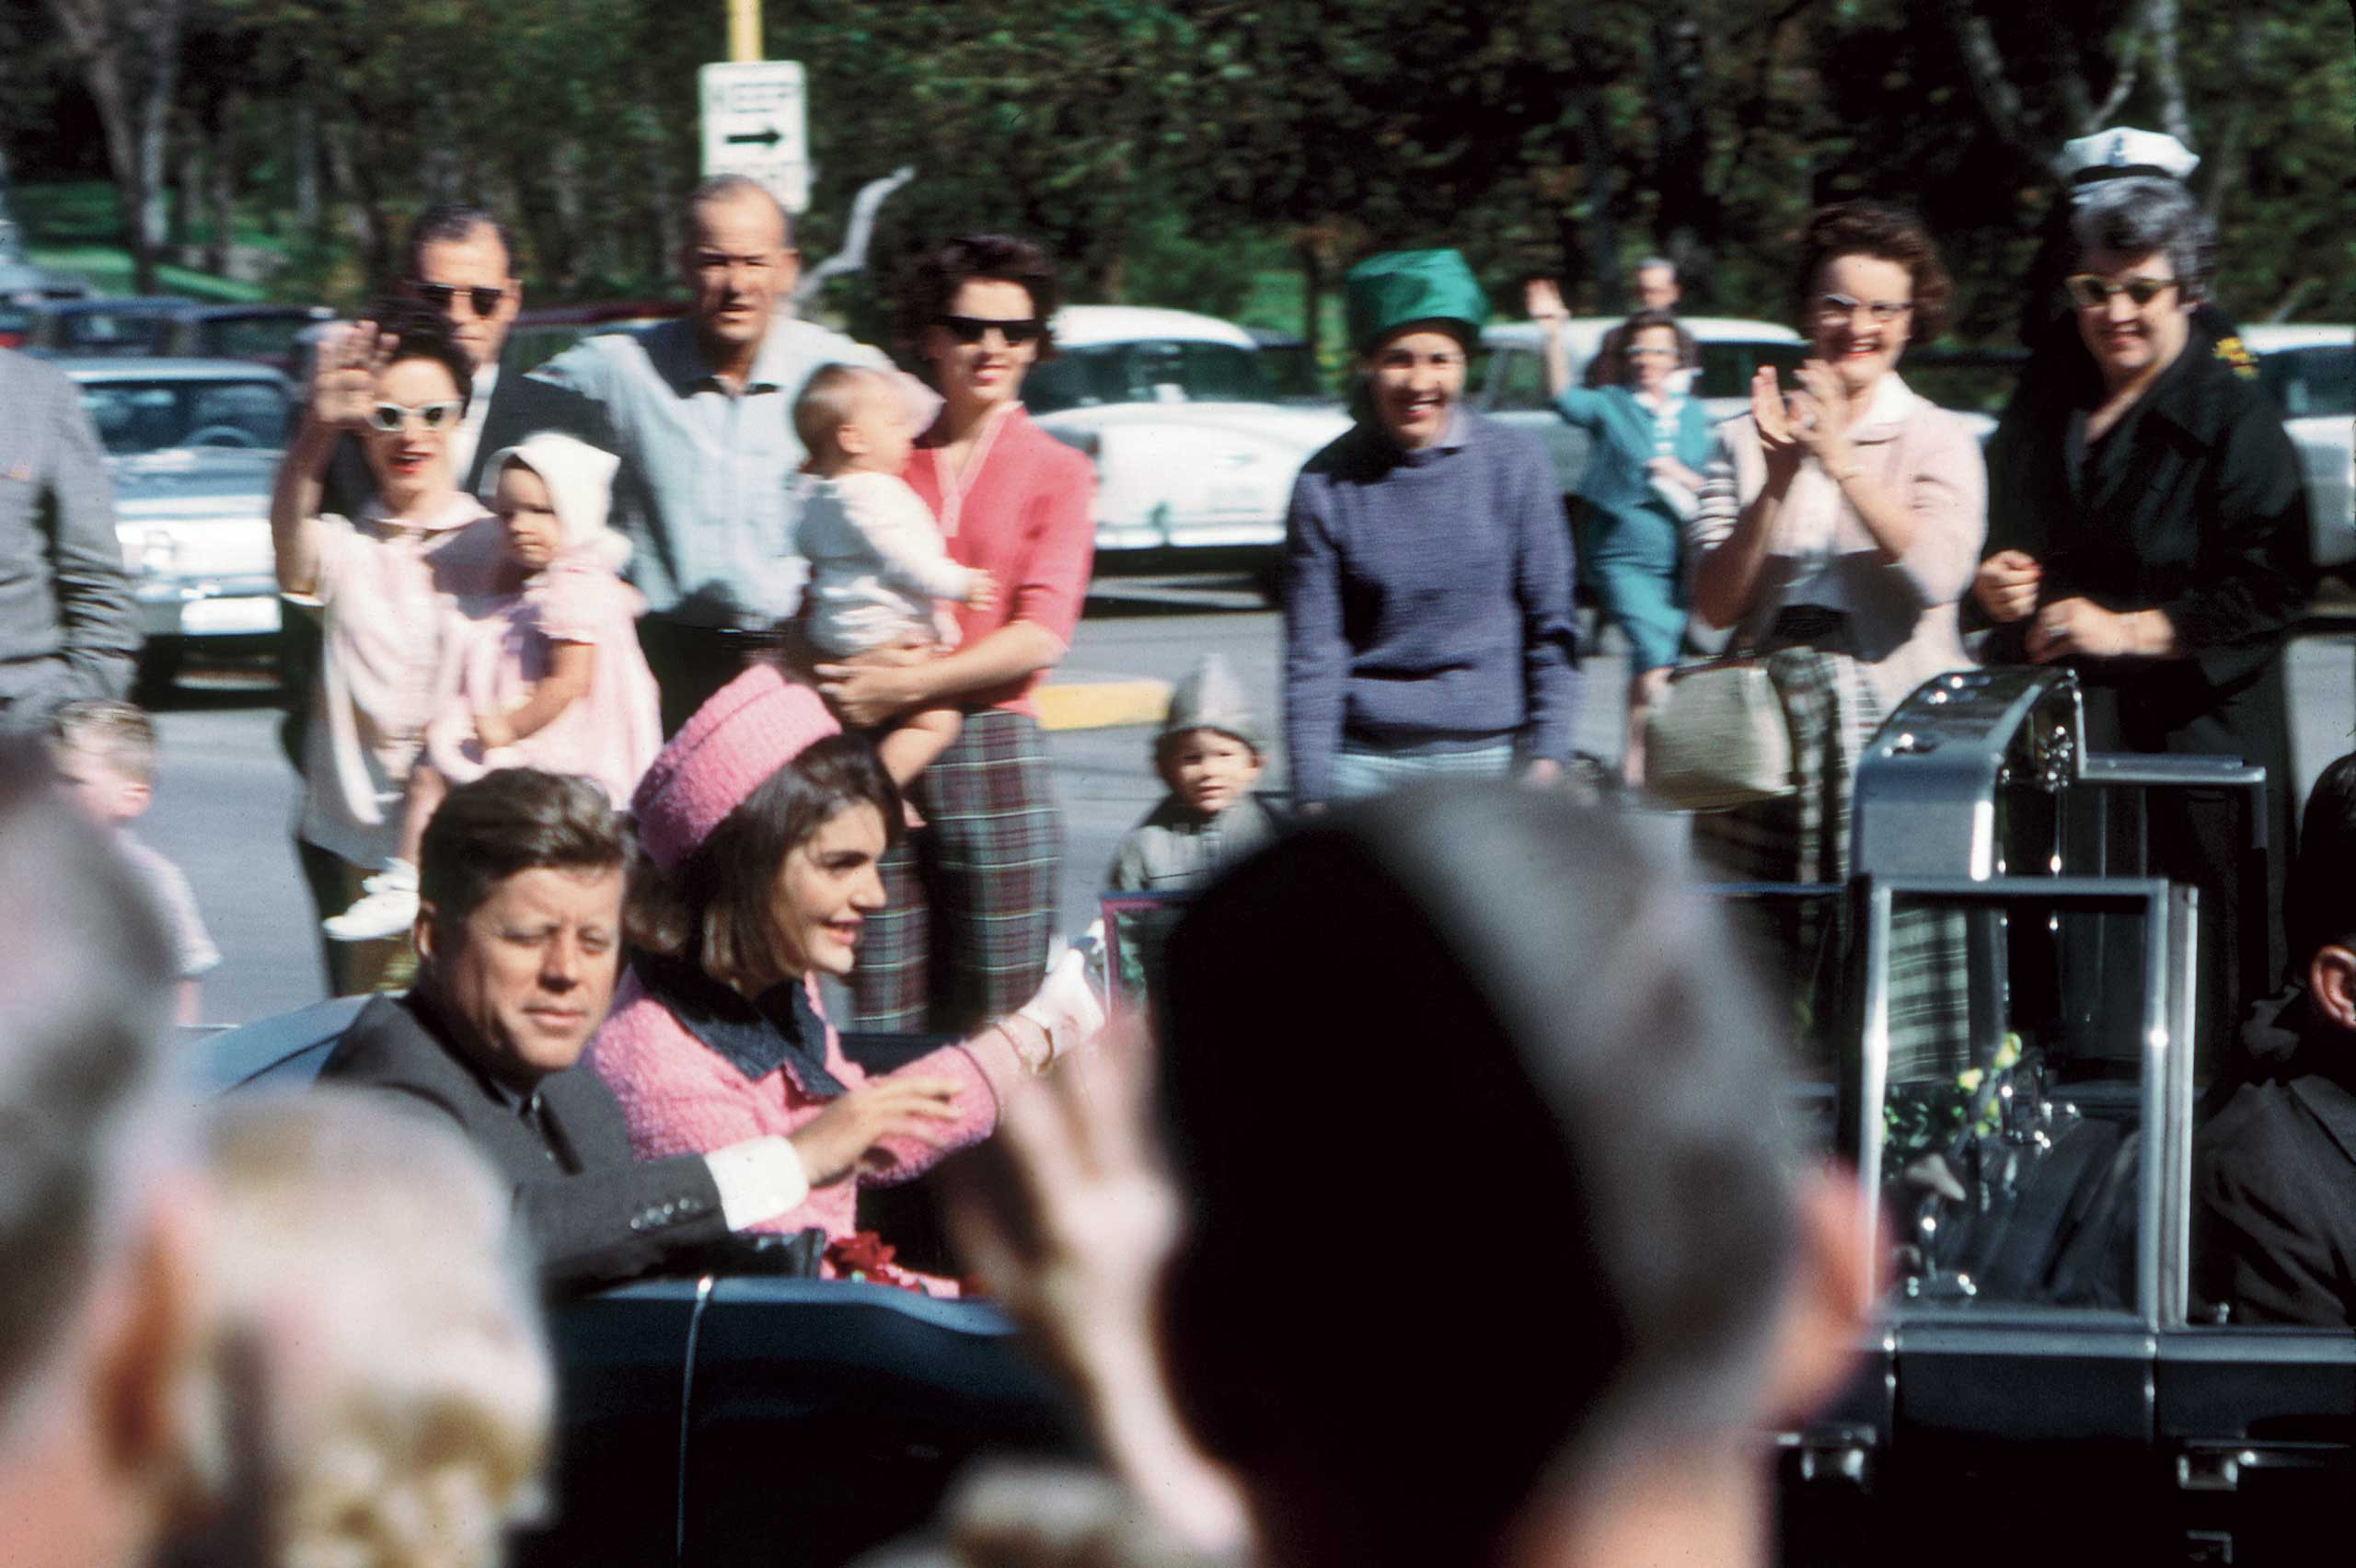 Kennedy's well-wishers crowded close to his limousine as the motorcade neared Dealey Plaza.